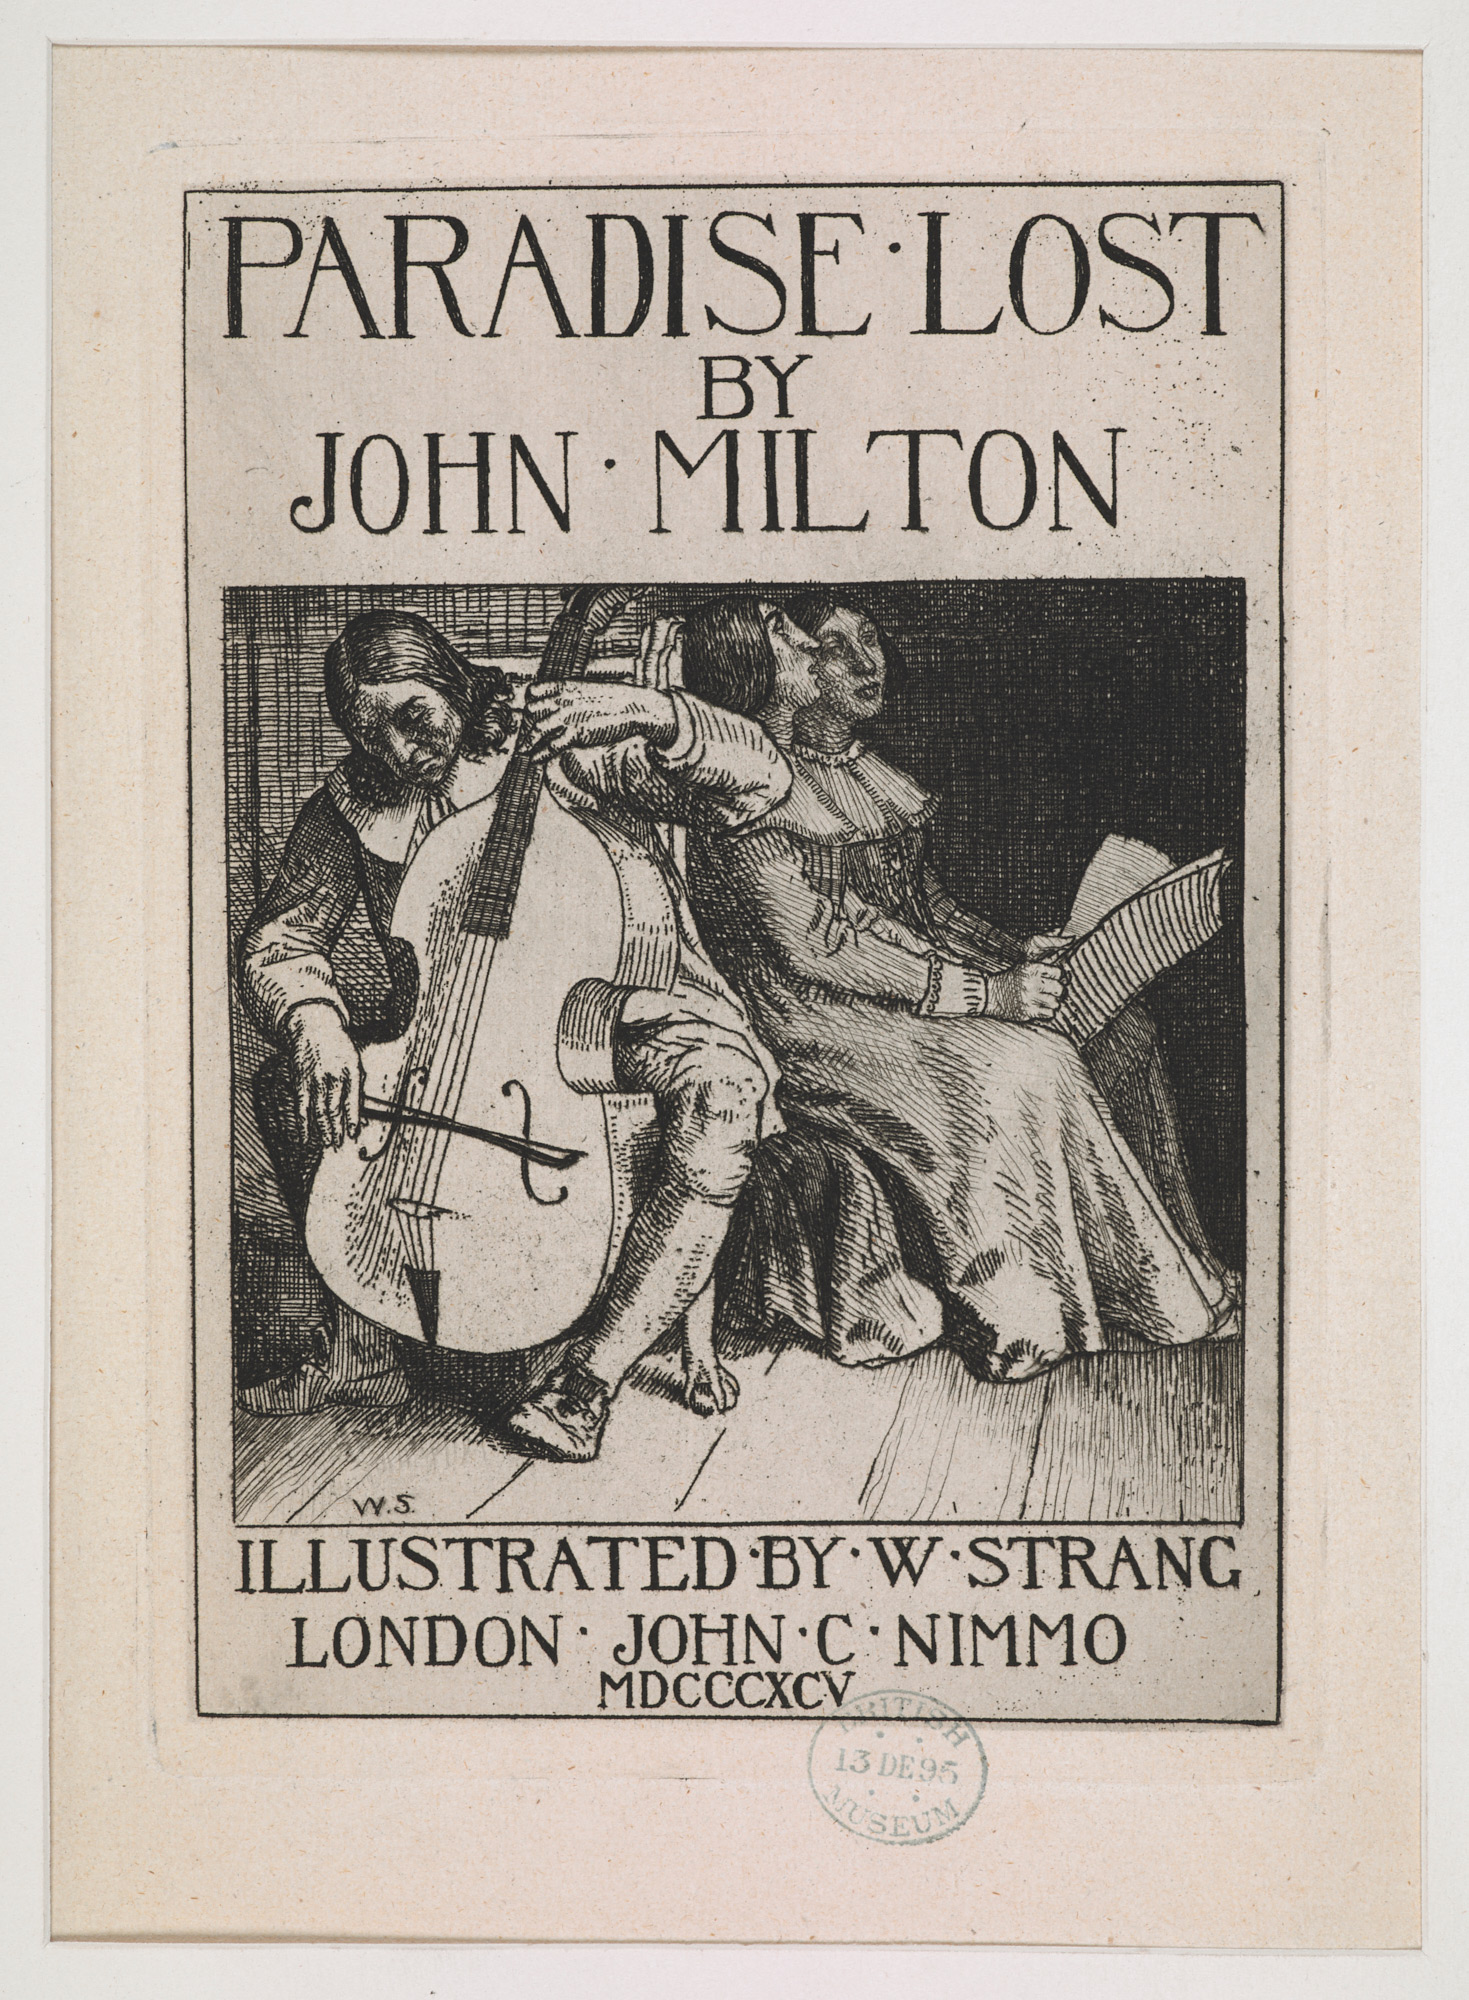 William Strang's illustrations for Paradise Lost, 1896